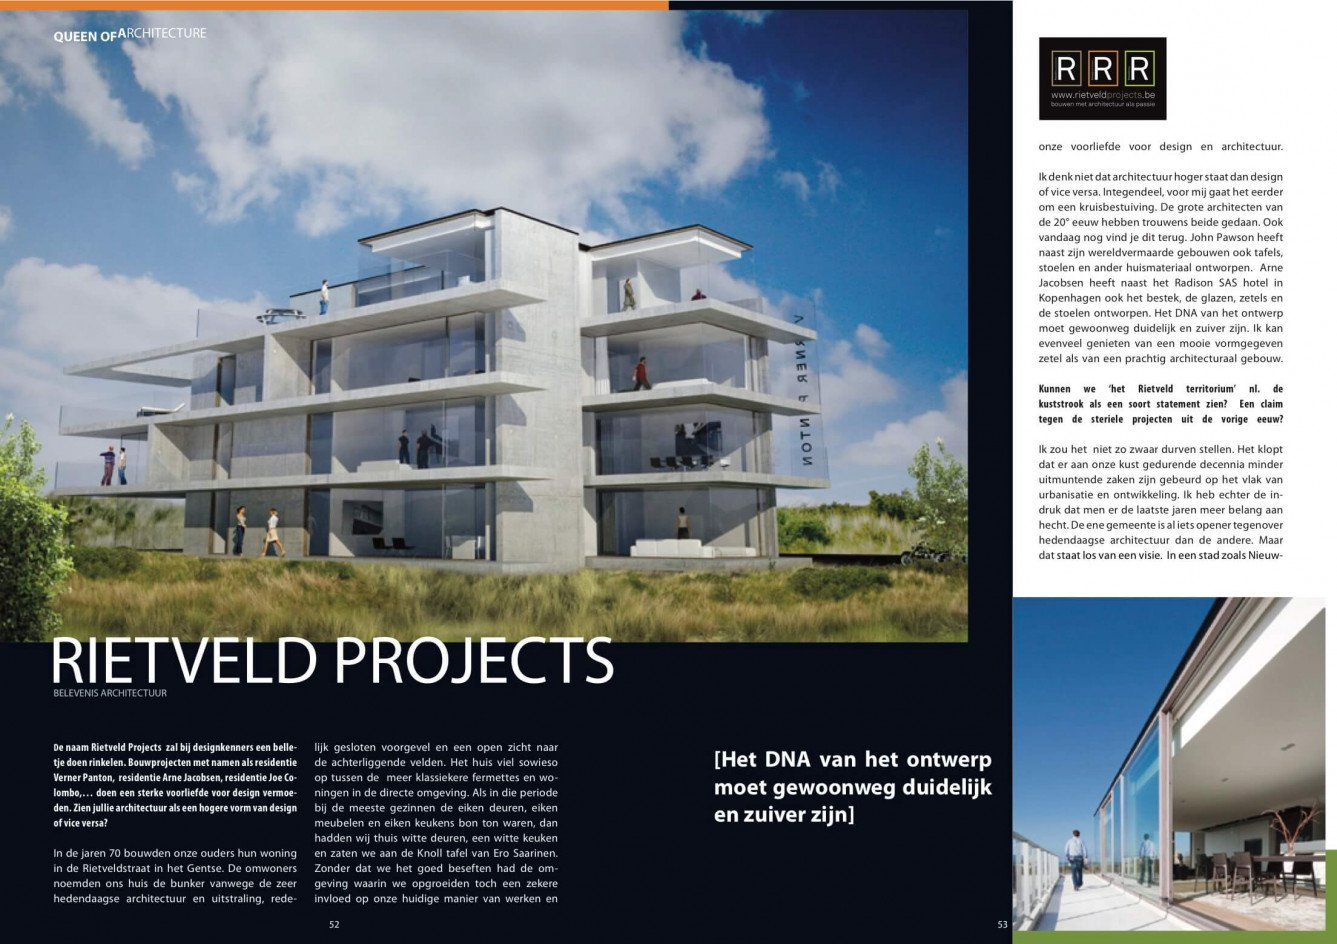 Magazine Queen of Flowers - Rietveldprojects, Queen of Architecture 1